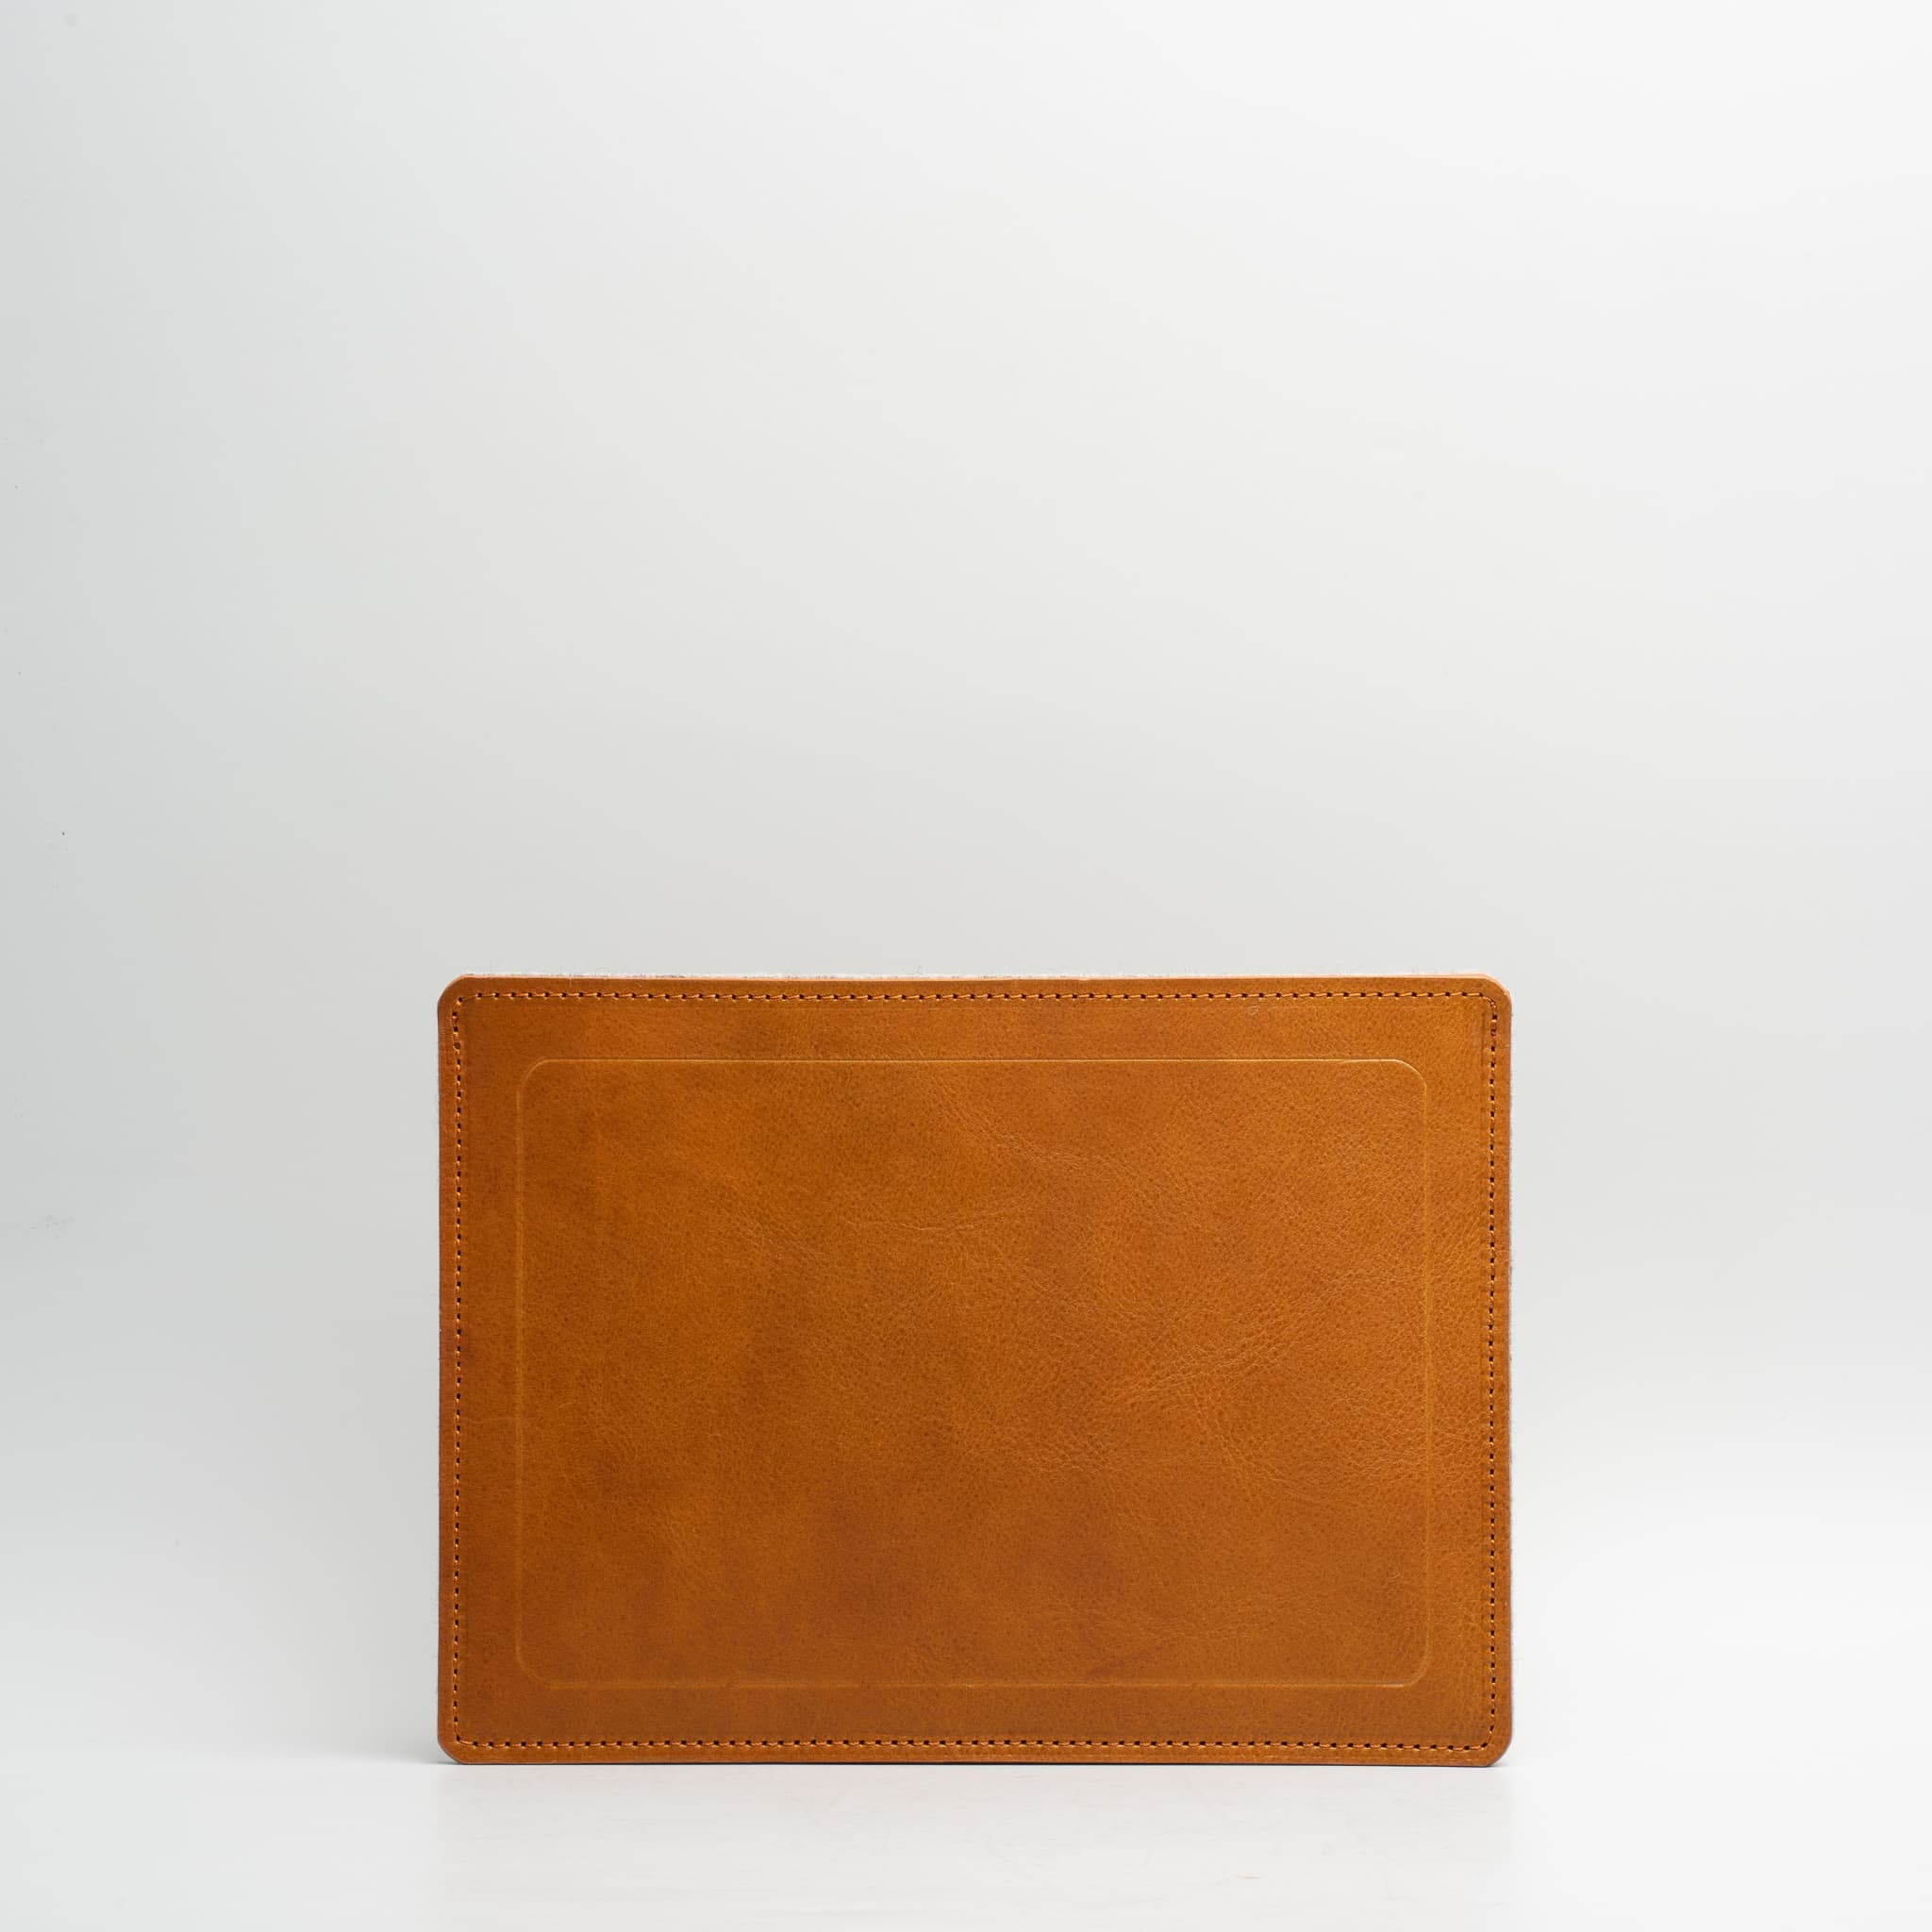 ipad pro 11 inch leather sleeve